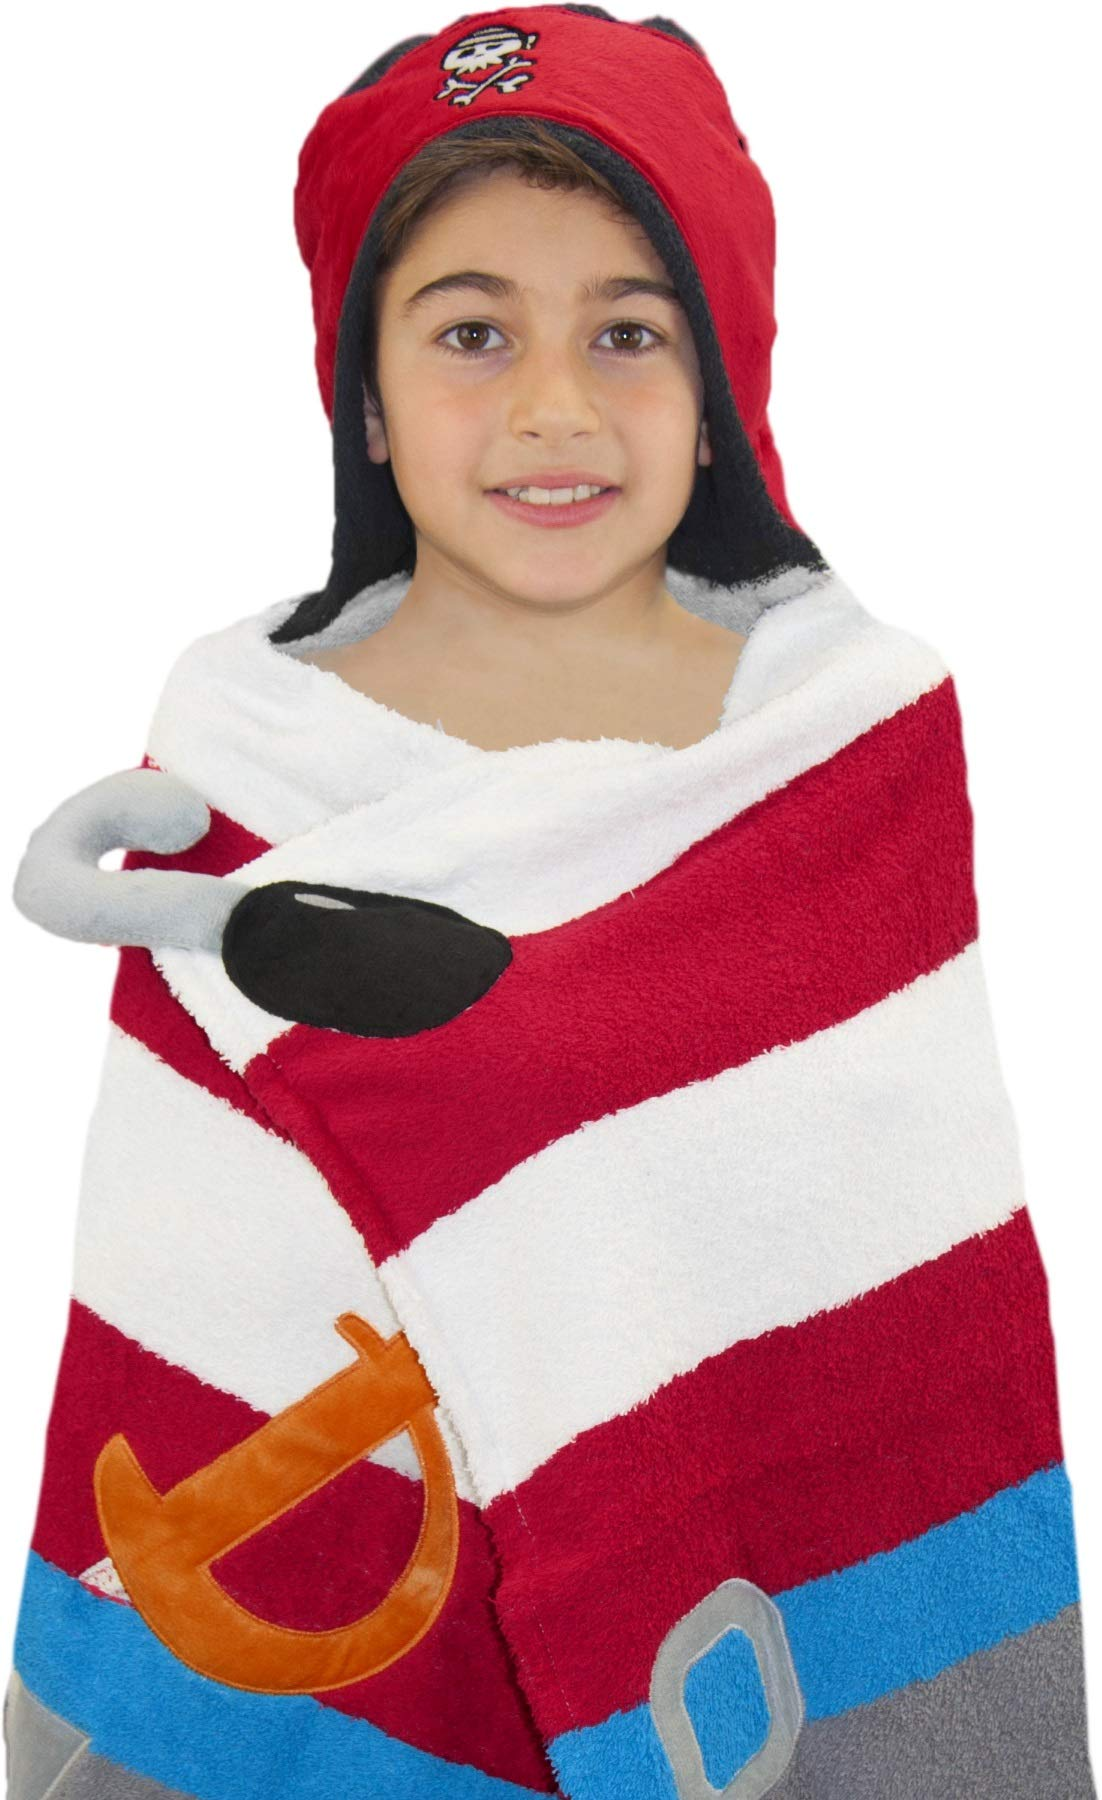 Hooded Towel For Kids, Oversize Cotton Character Hood Towel - Makes Getting Dry Fun - Ideal Beach Towels for Toddlers and Small Children - Use at the Pool or Bath Time, 26 x 47'', Pirate